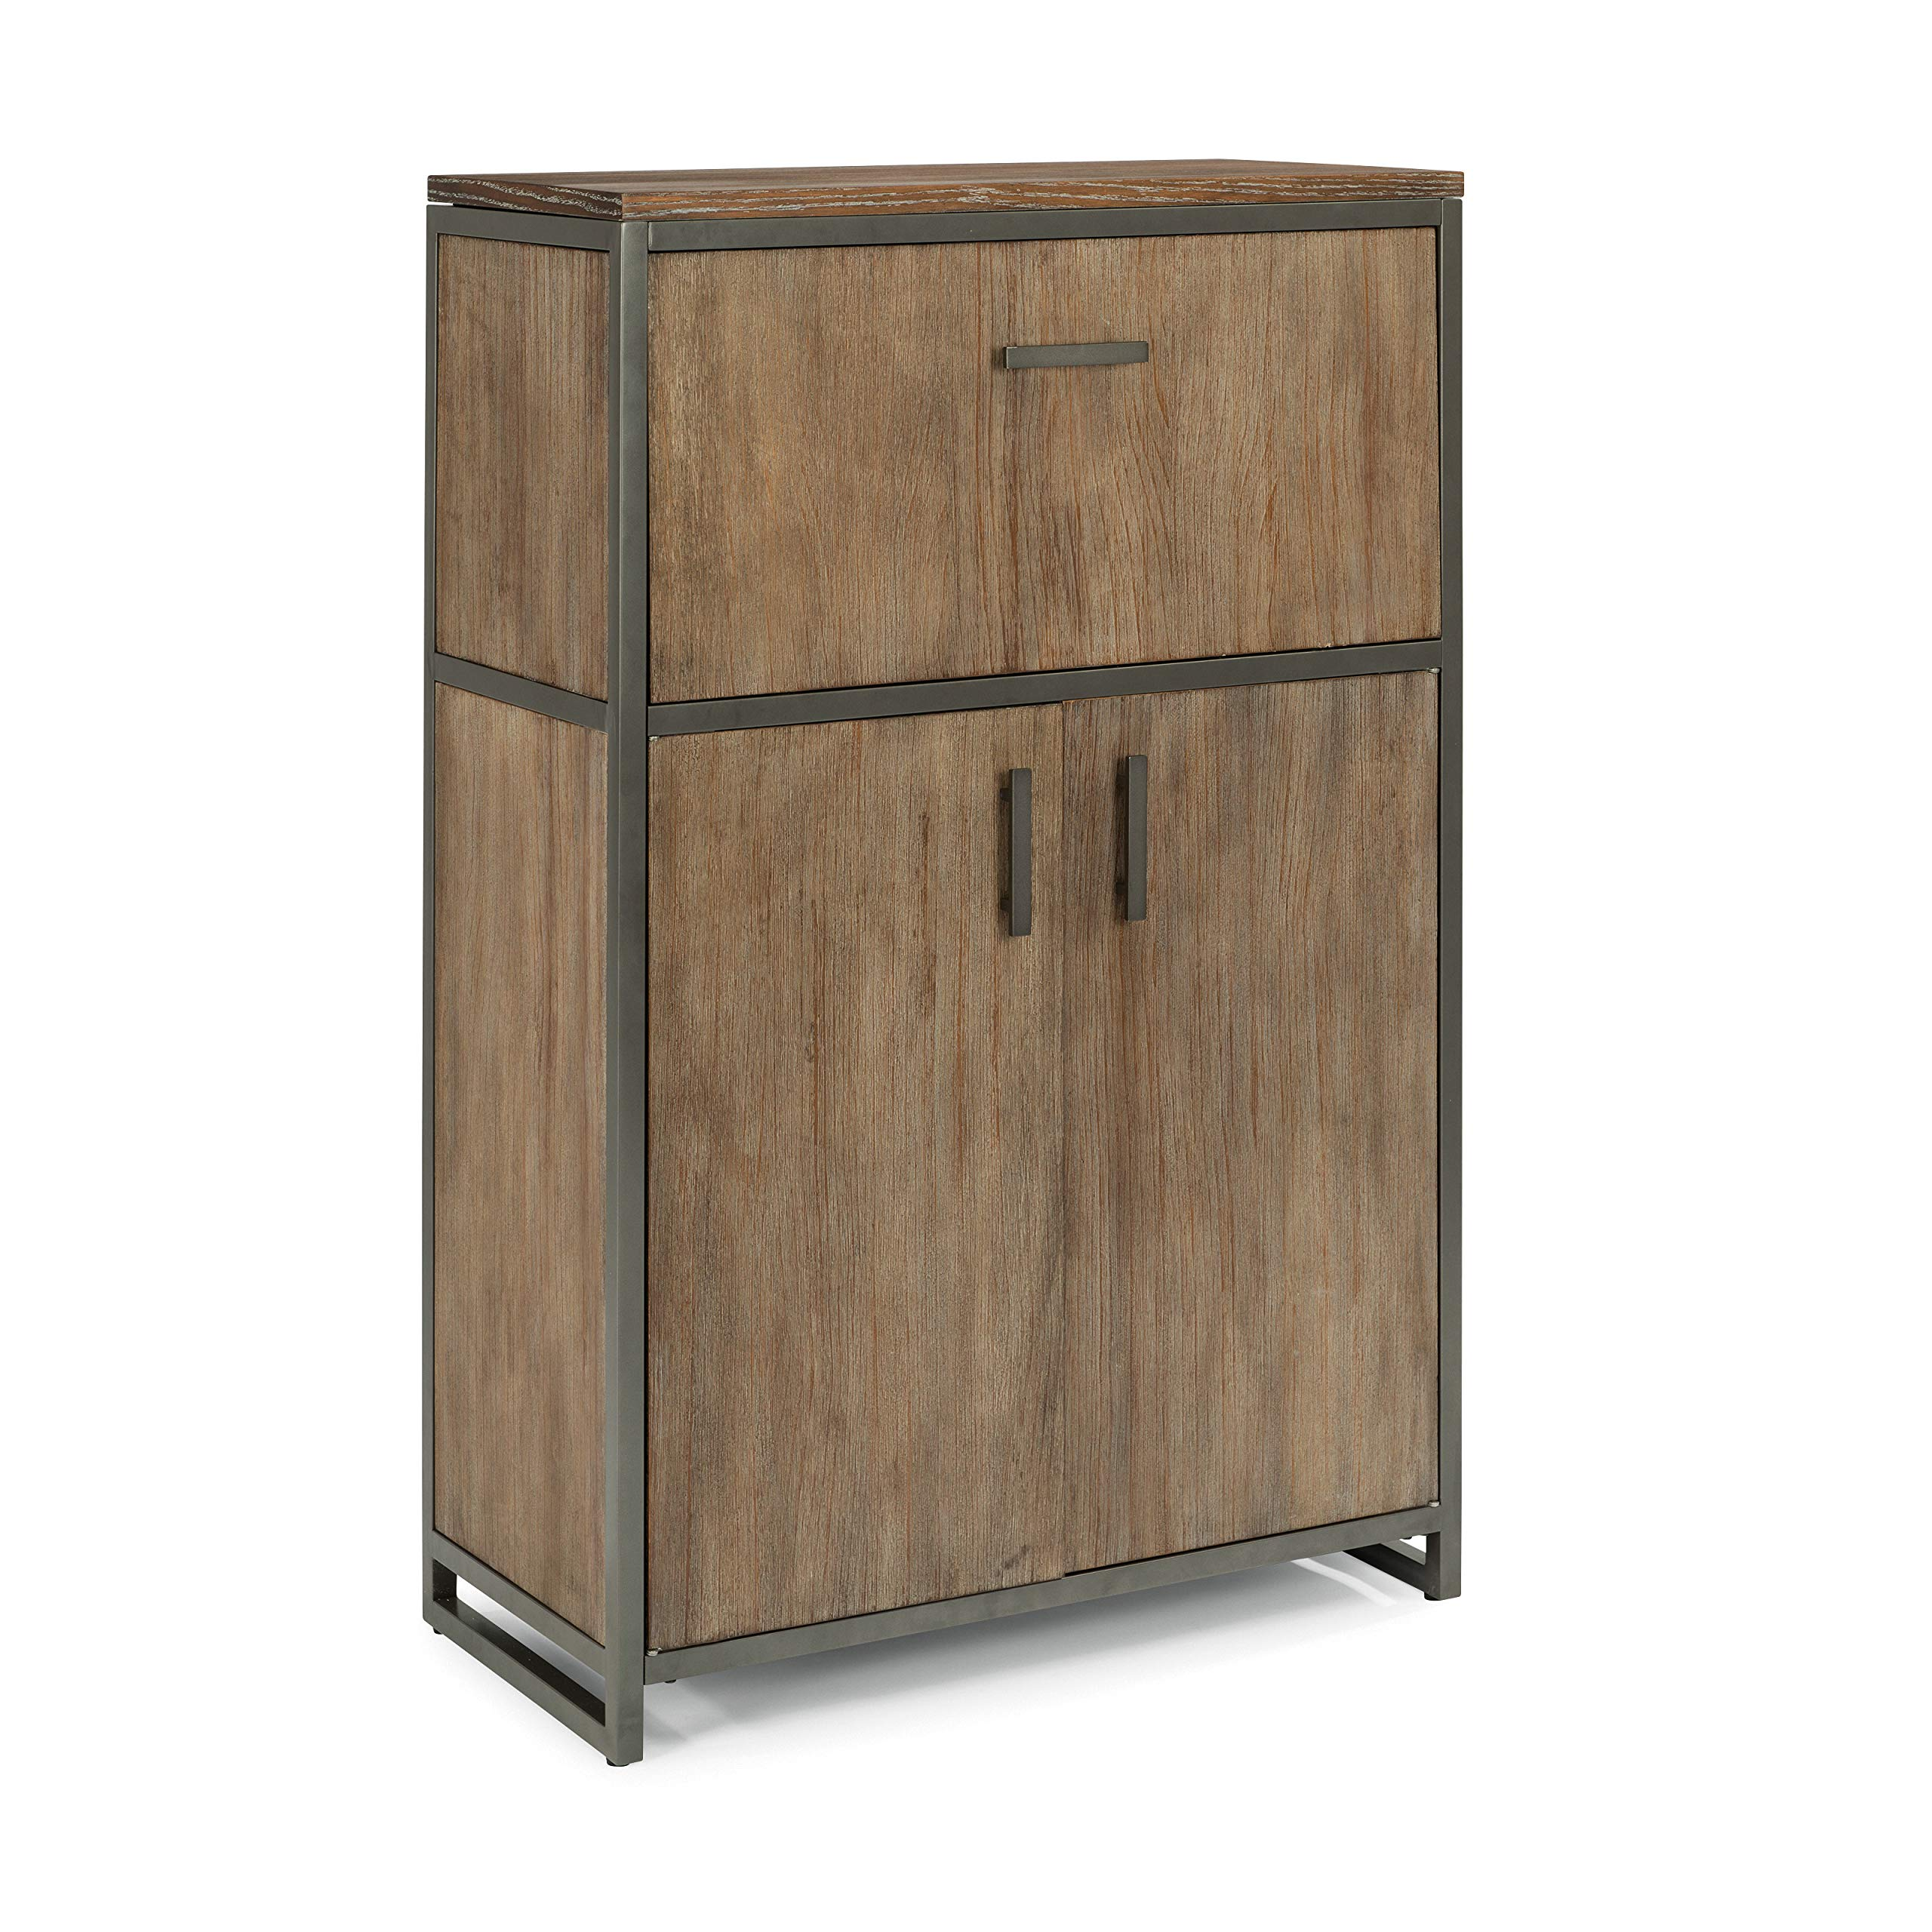 Barnside Metro Bar Cabinet in Multi-Tone Driftwood by Home Styles by Home Styles